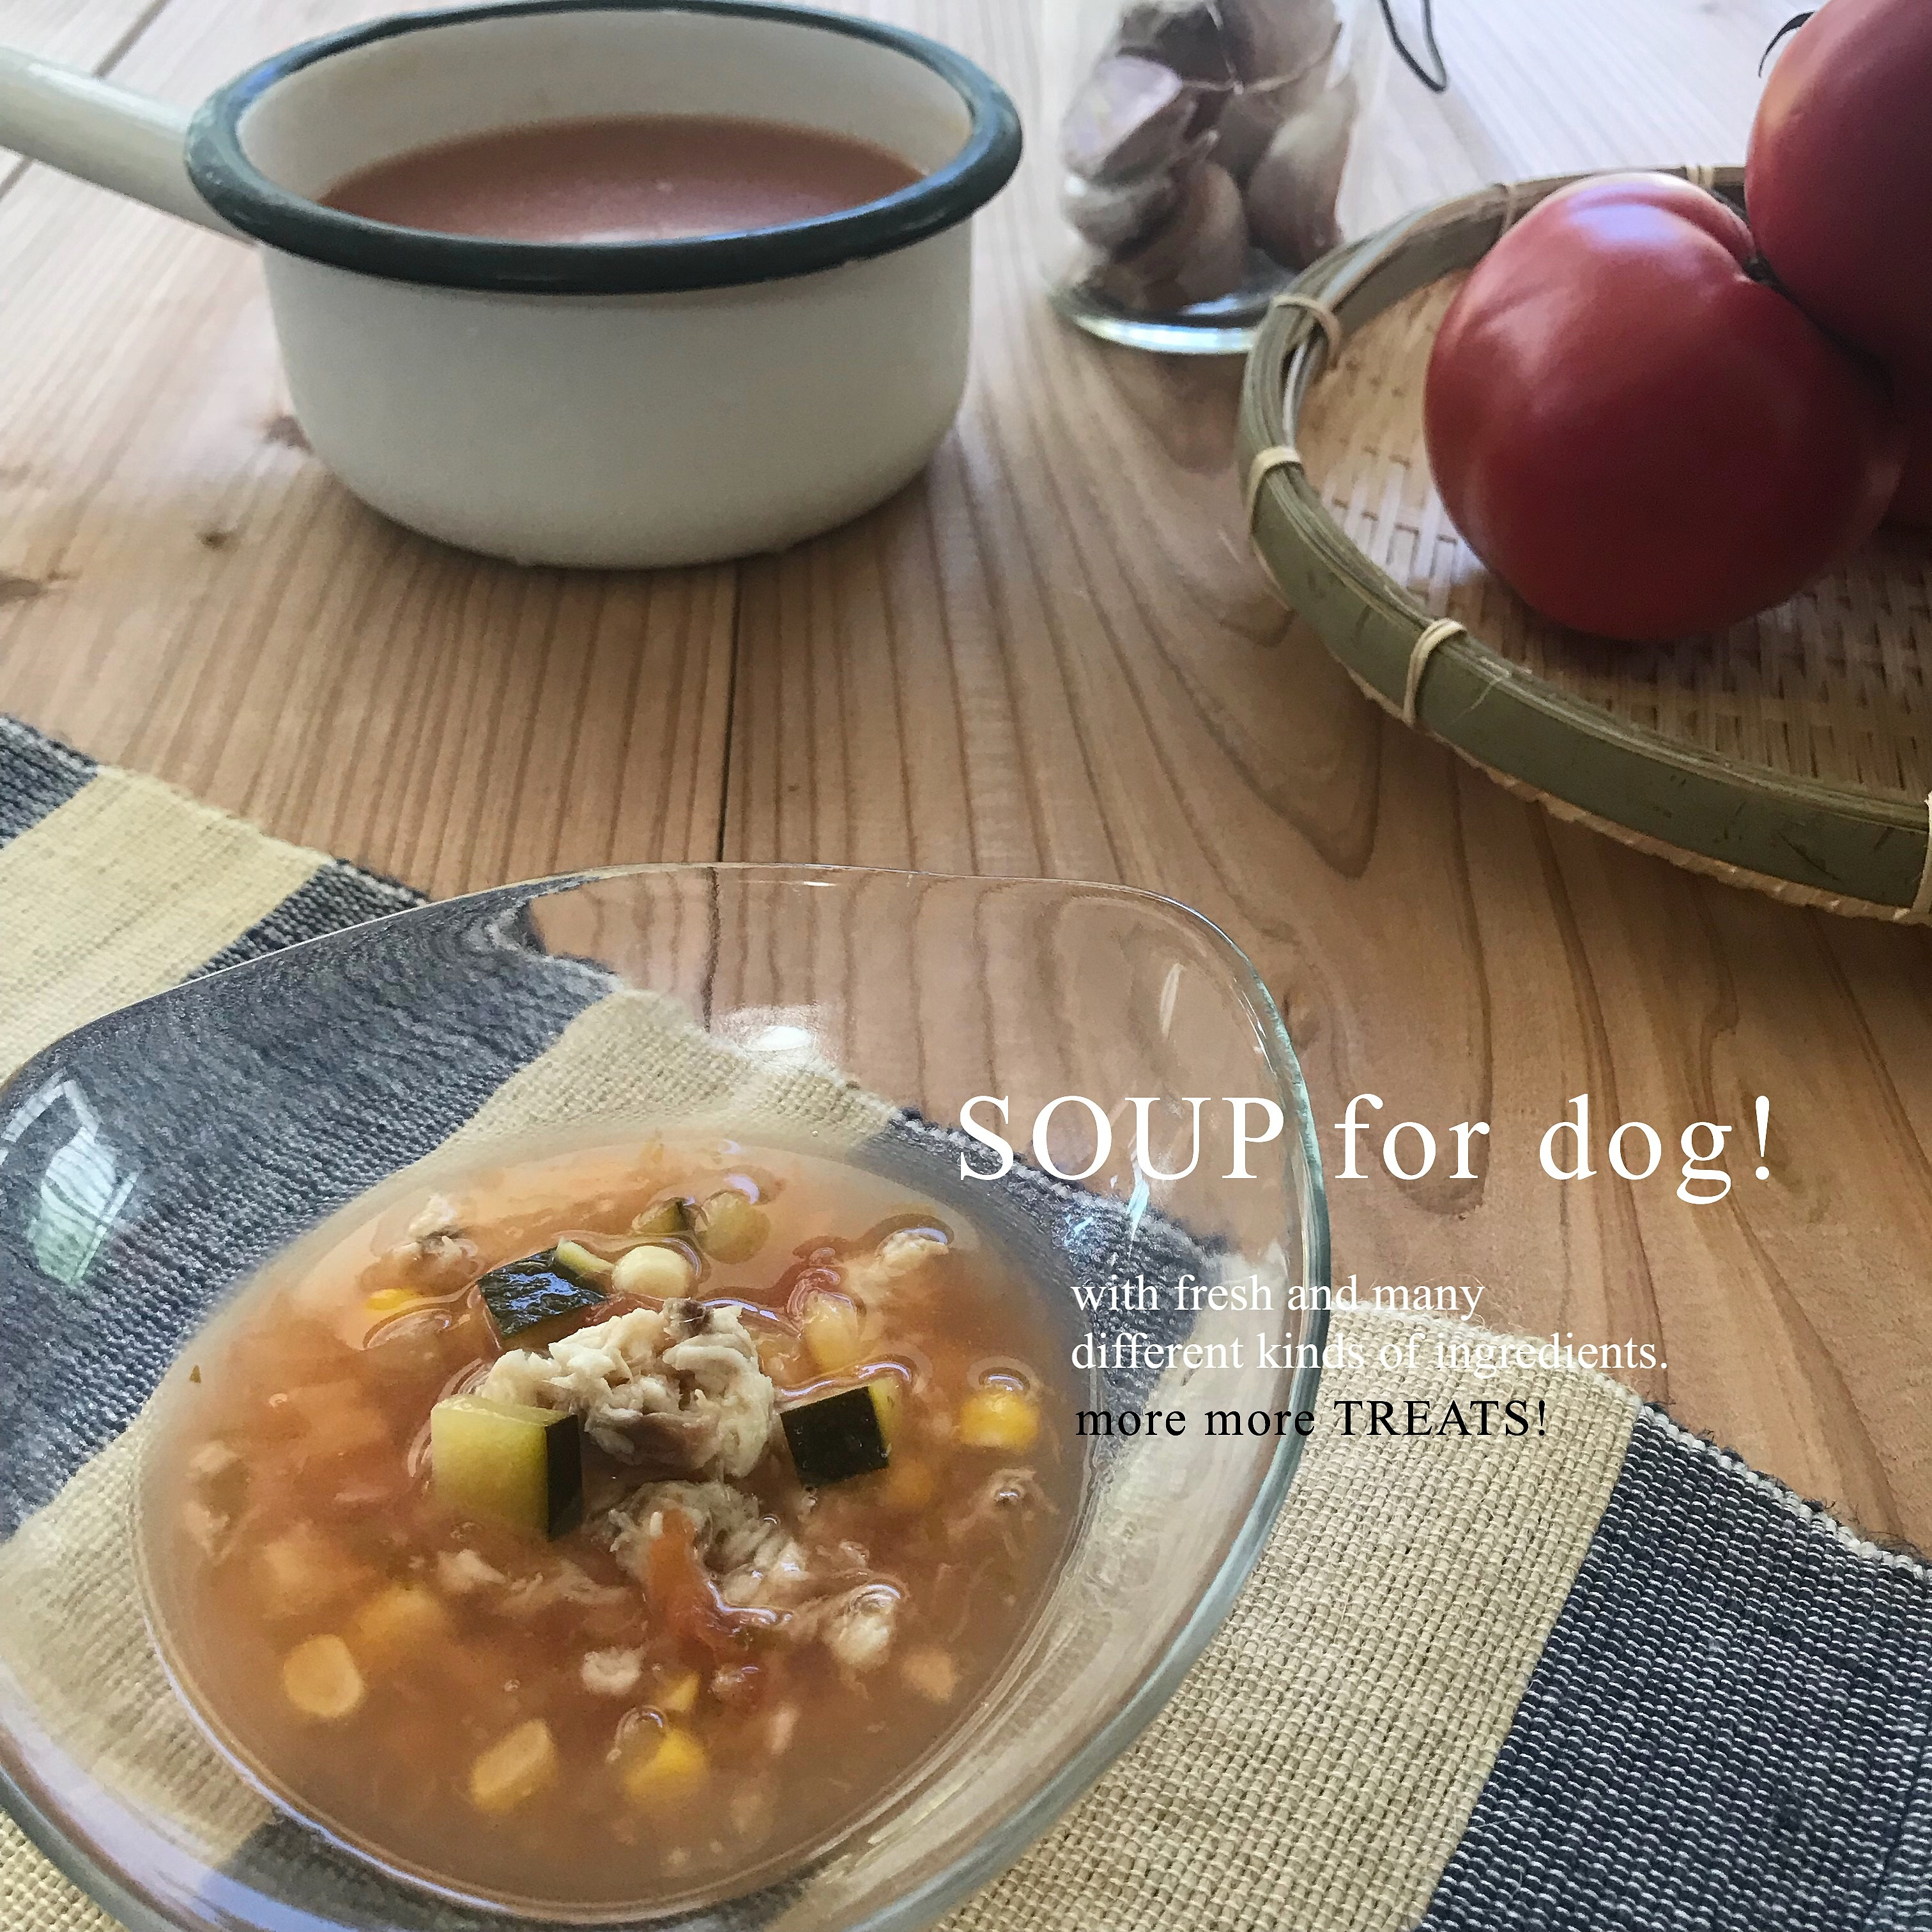 Soup for dog!